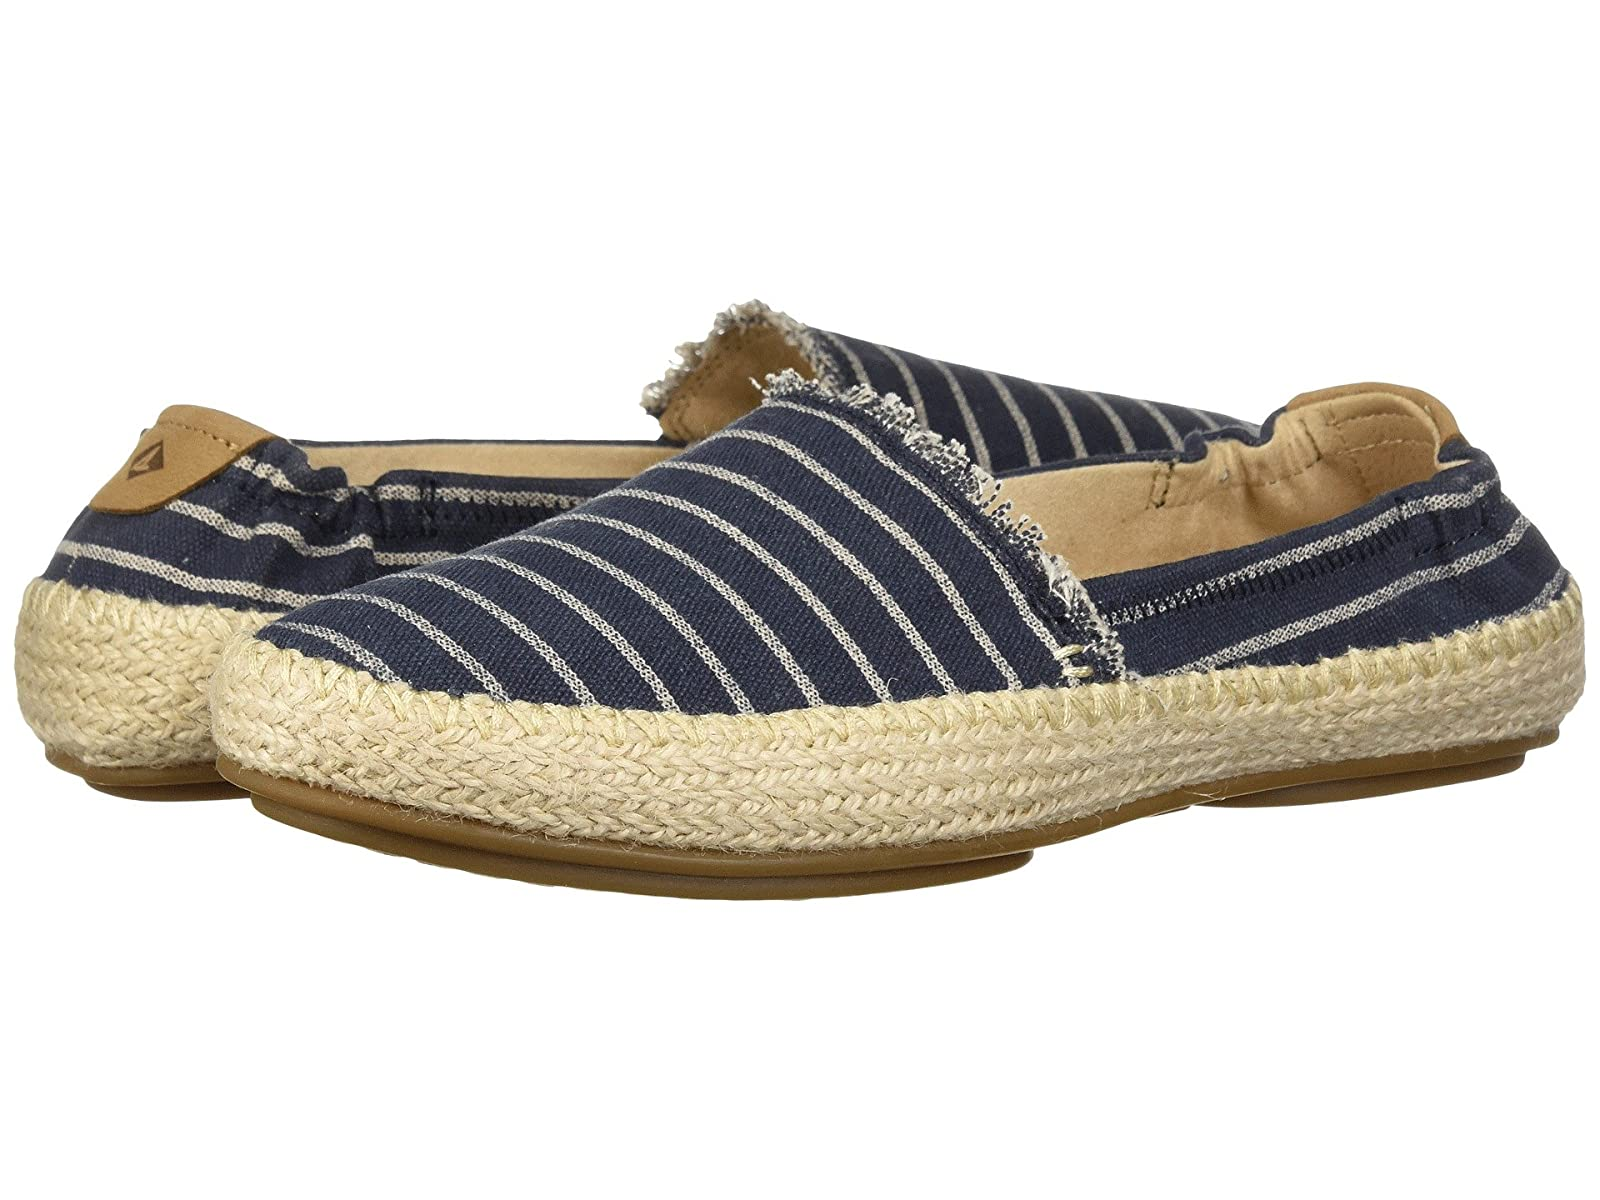 Sperry Sunset Ella CanvasAtmospheric grades have affordable shoes